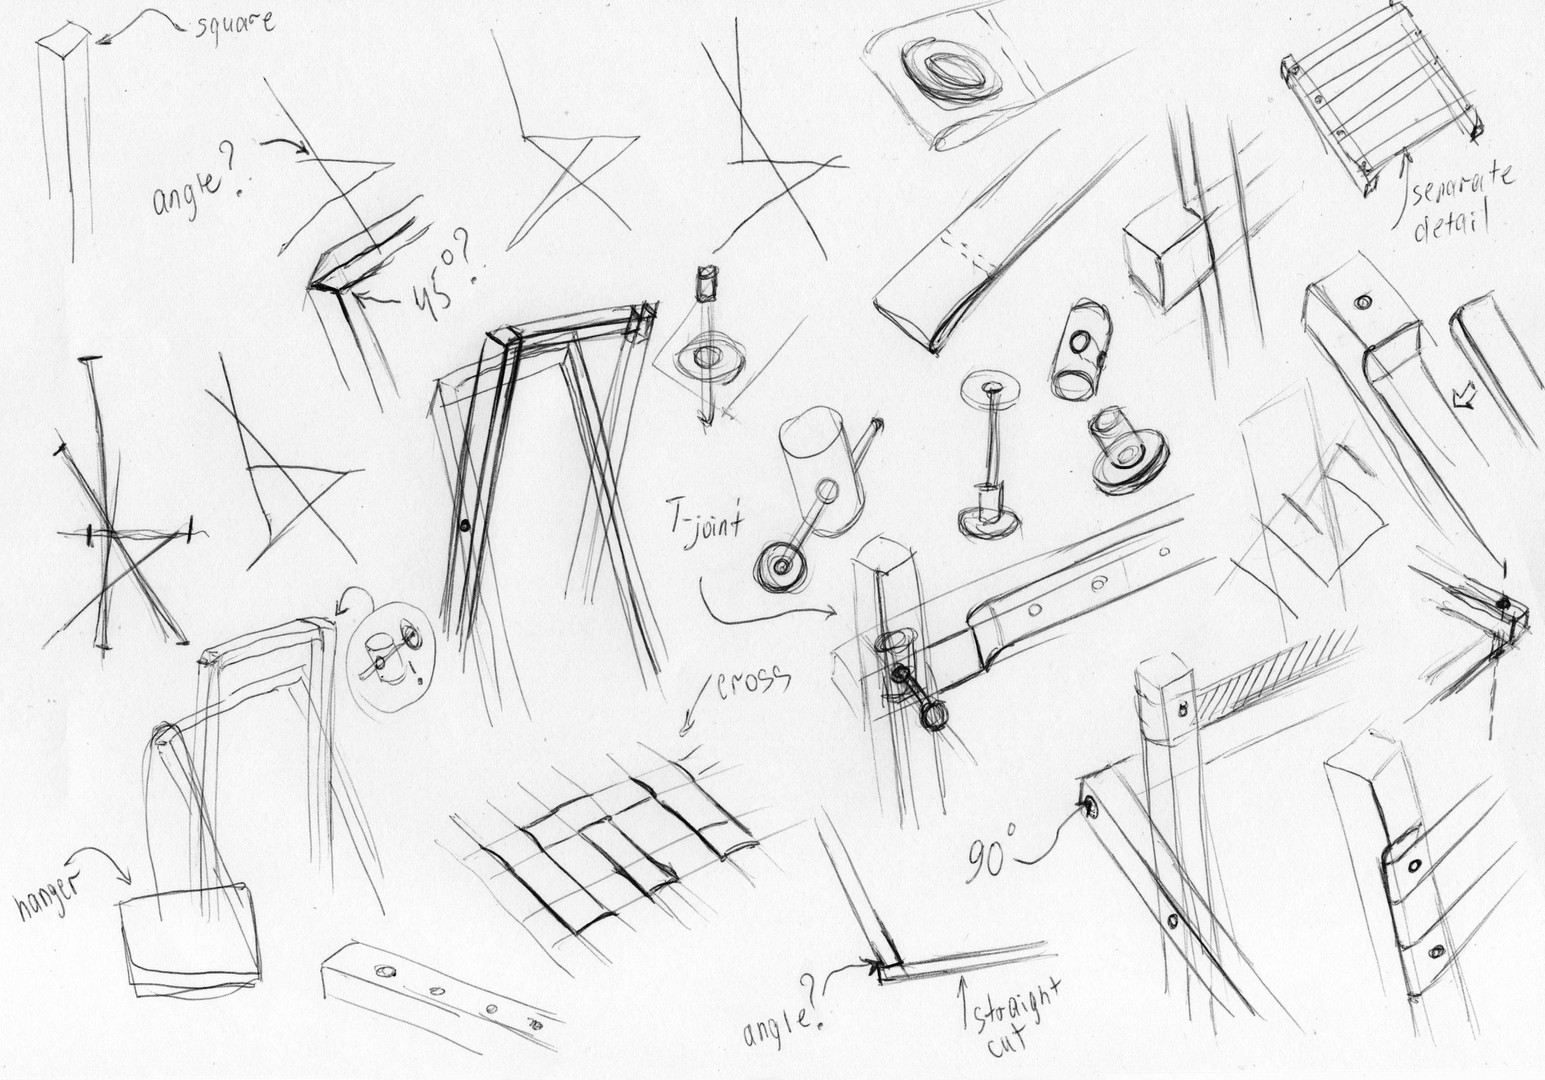 This is our first BOW chair sketch